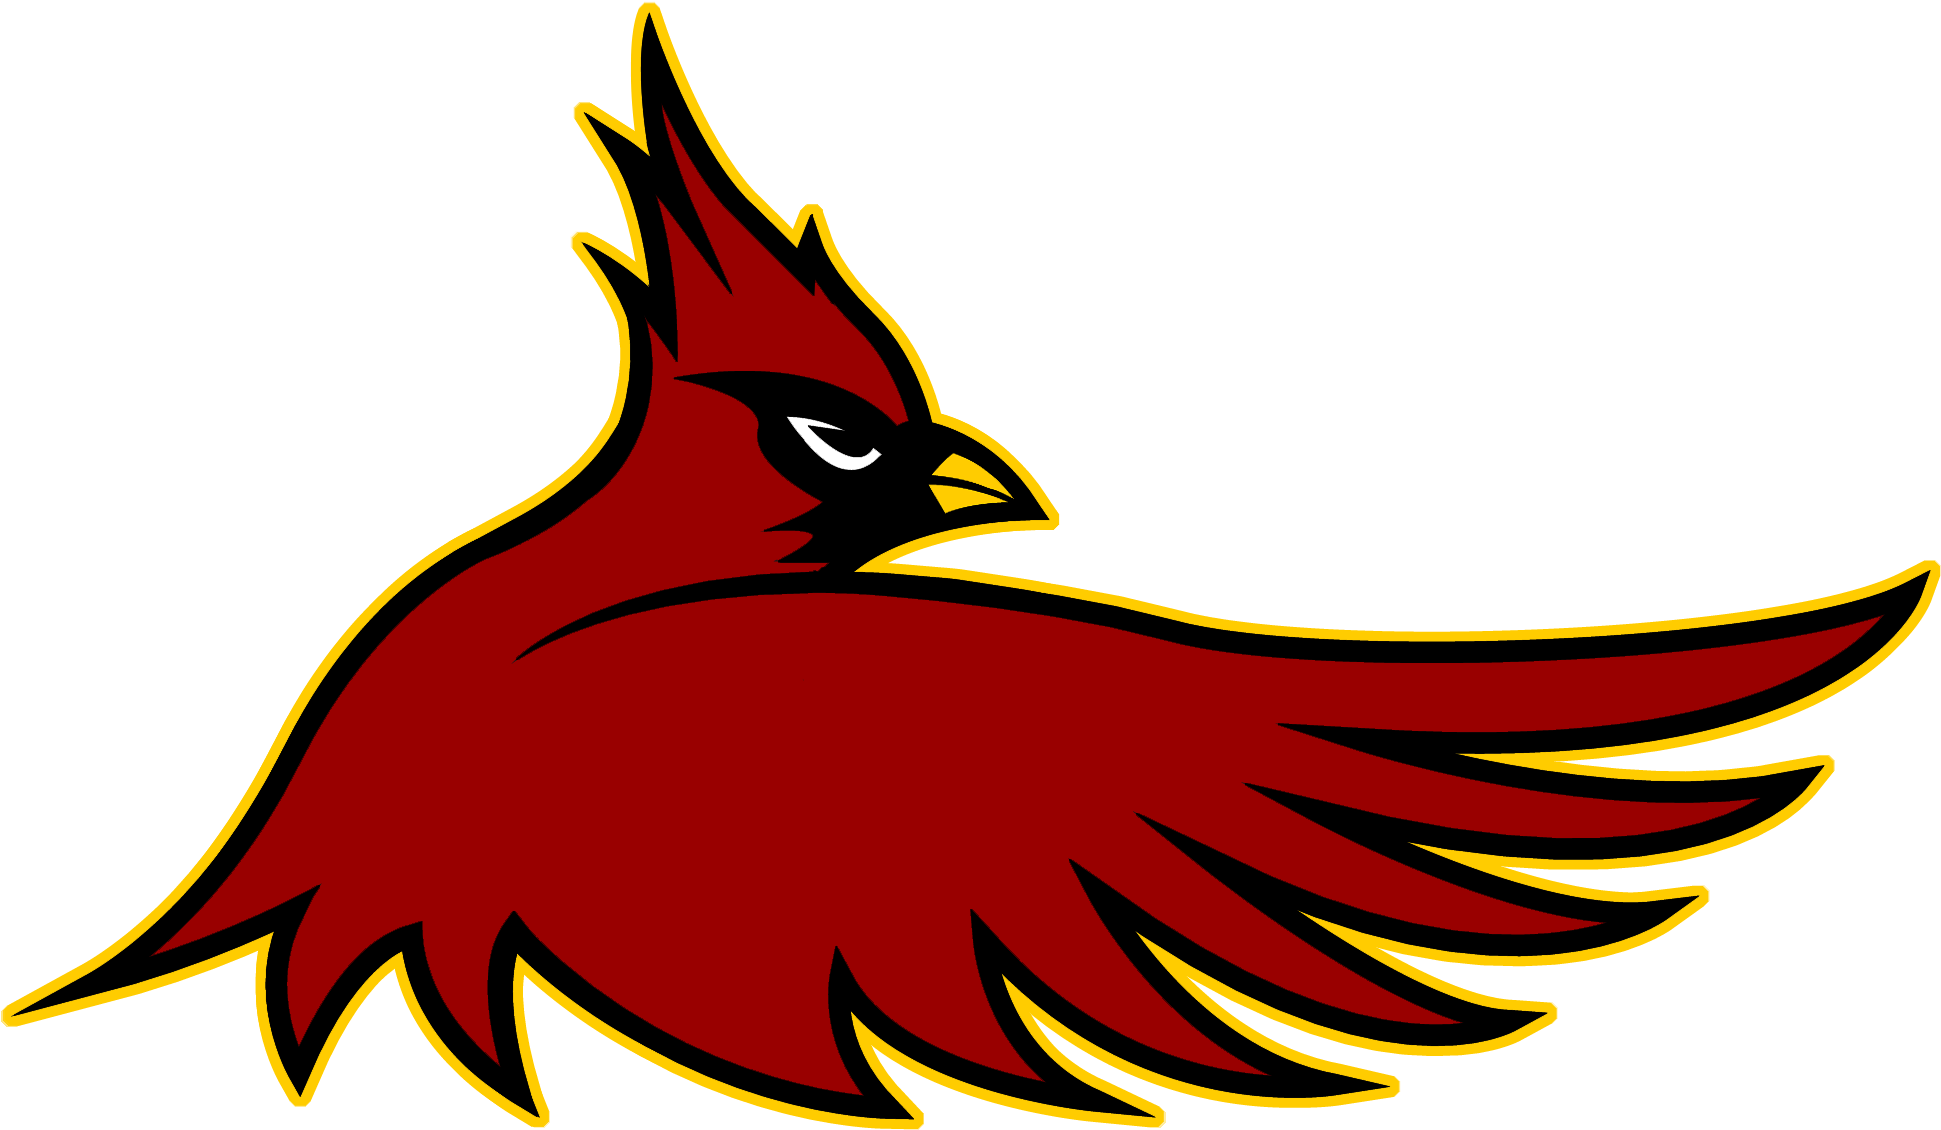 Free Cardinal Cliparts, Download Free Clip Art, Free Clip Art on Clipart  Library